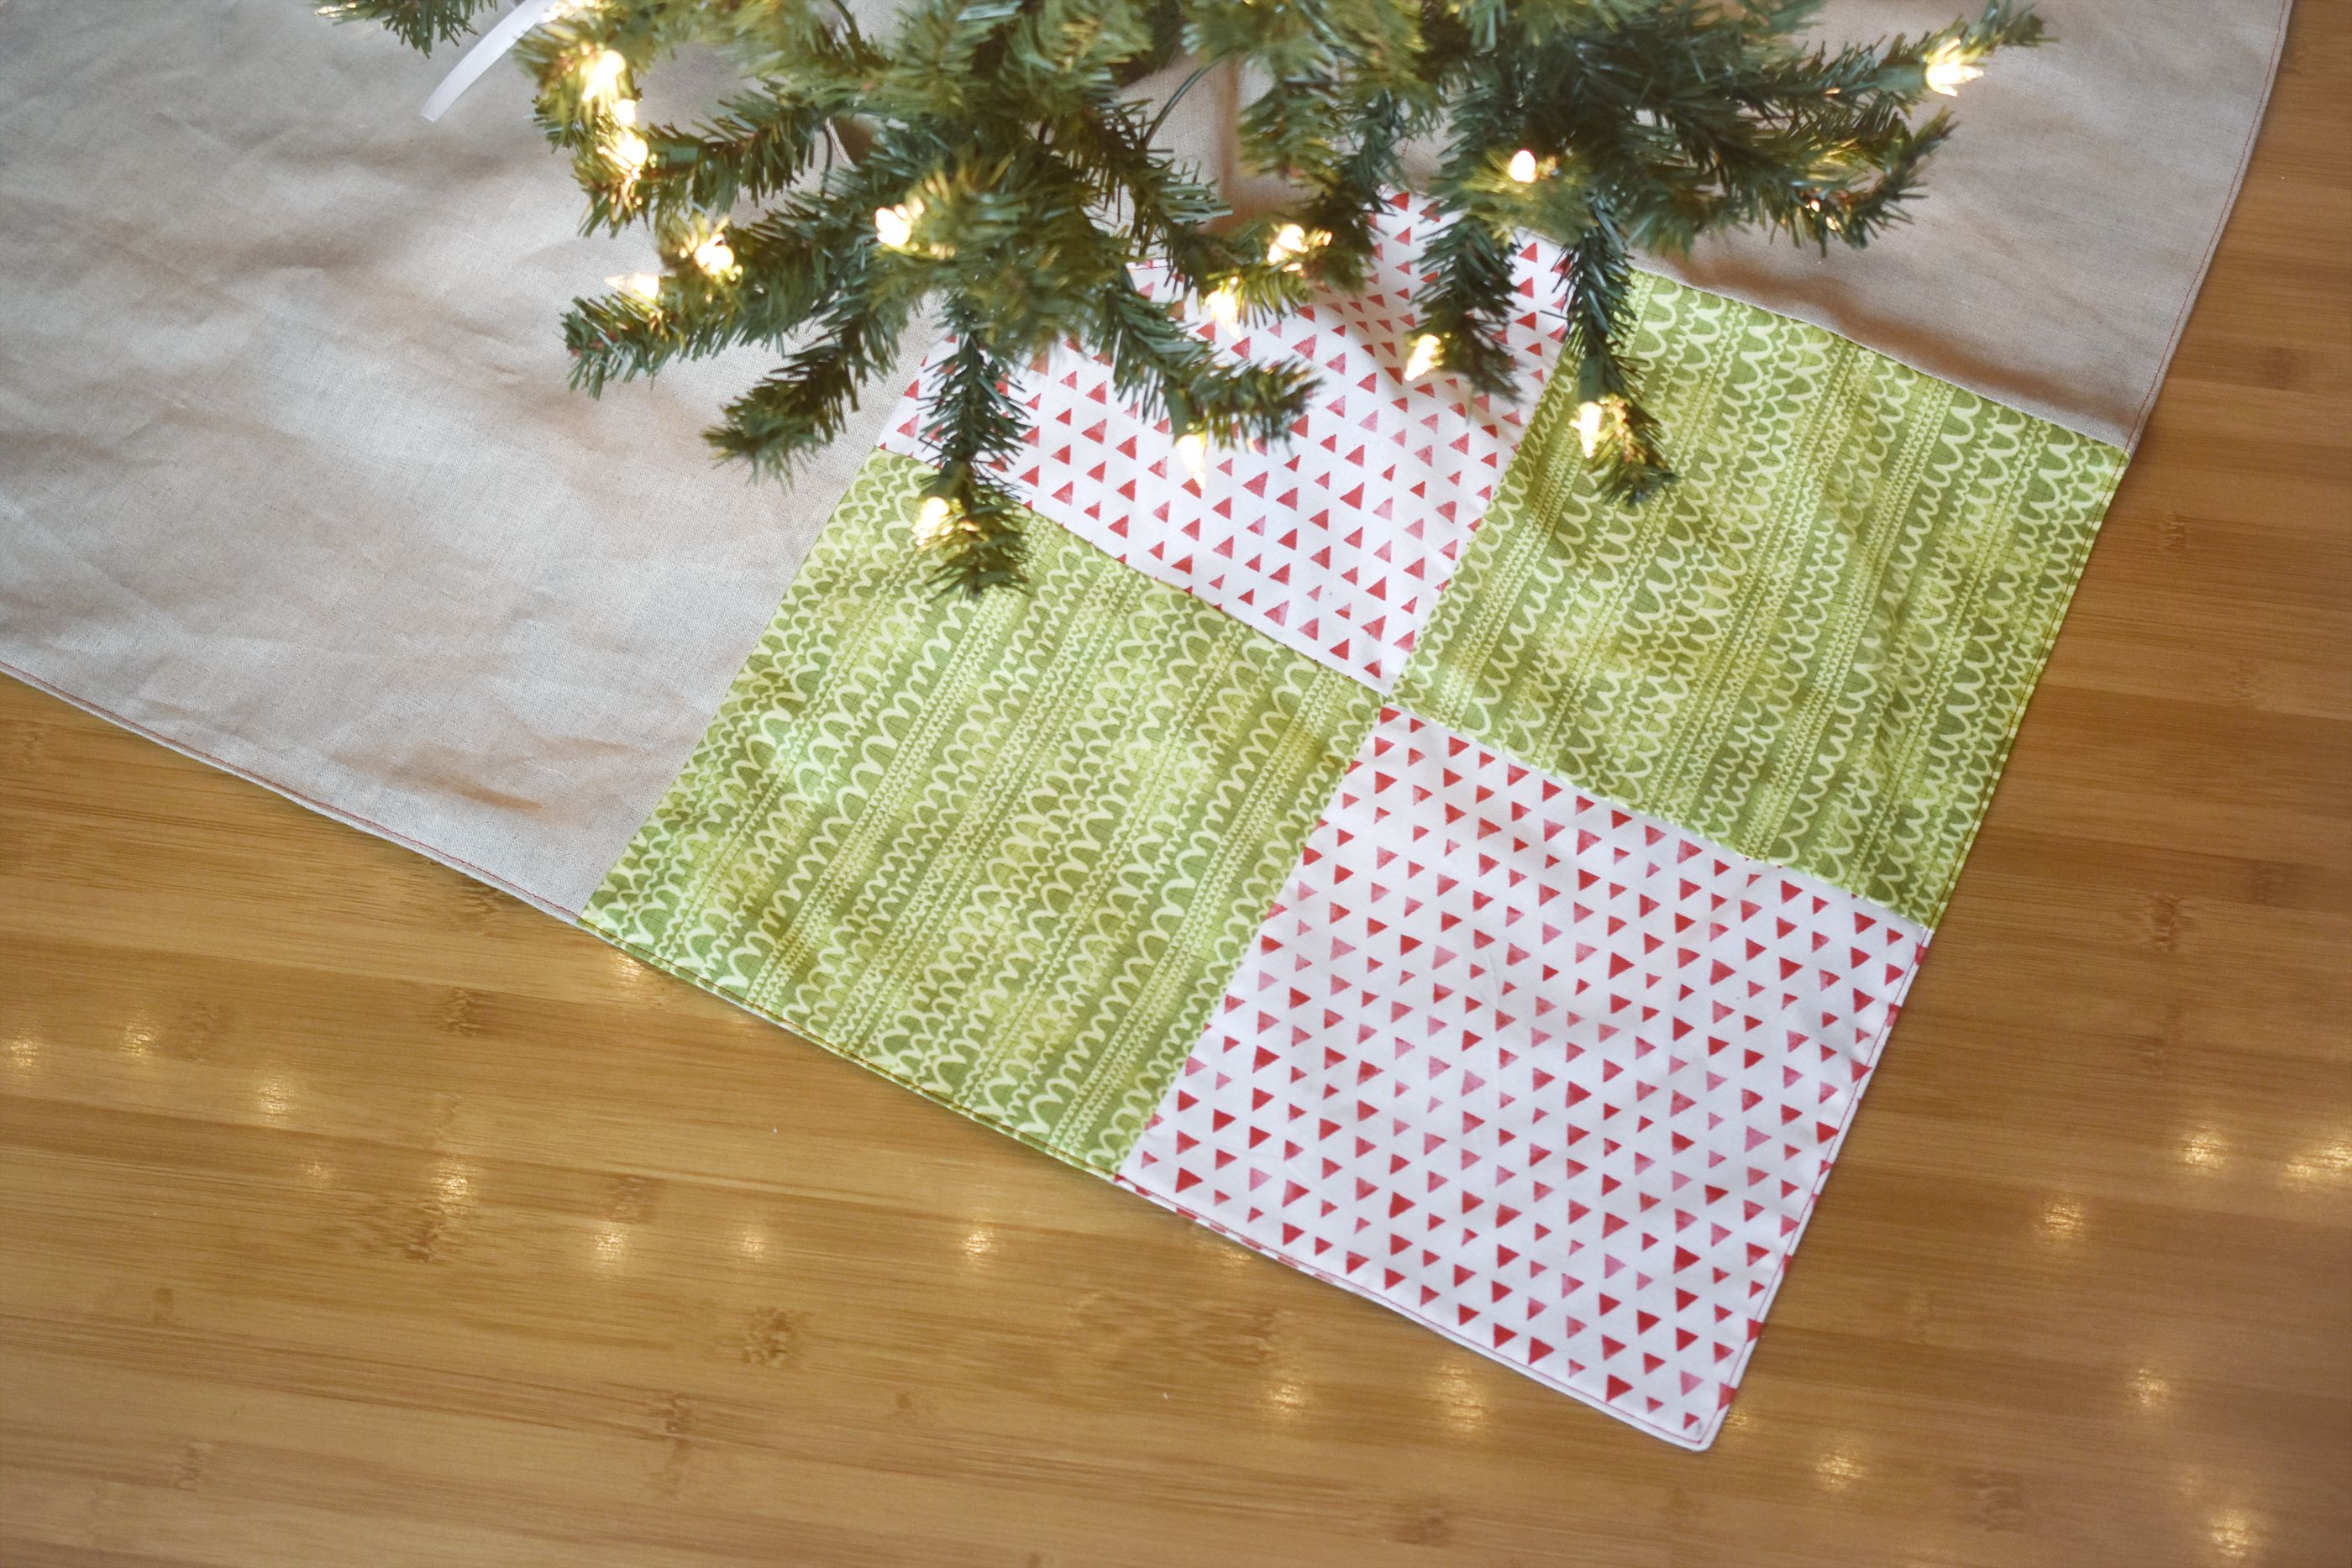 How to Sew a Patchwork Christmas Tree Skirt